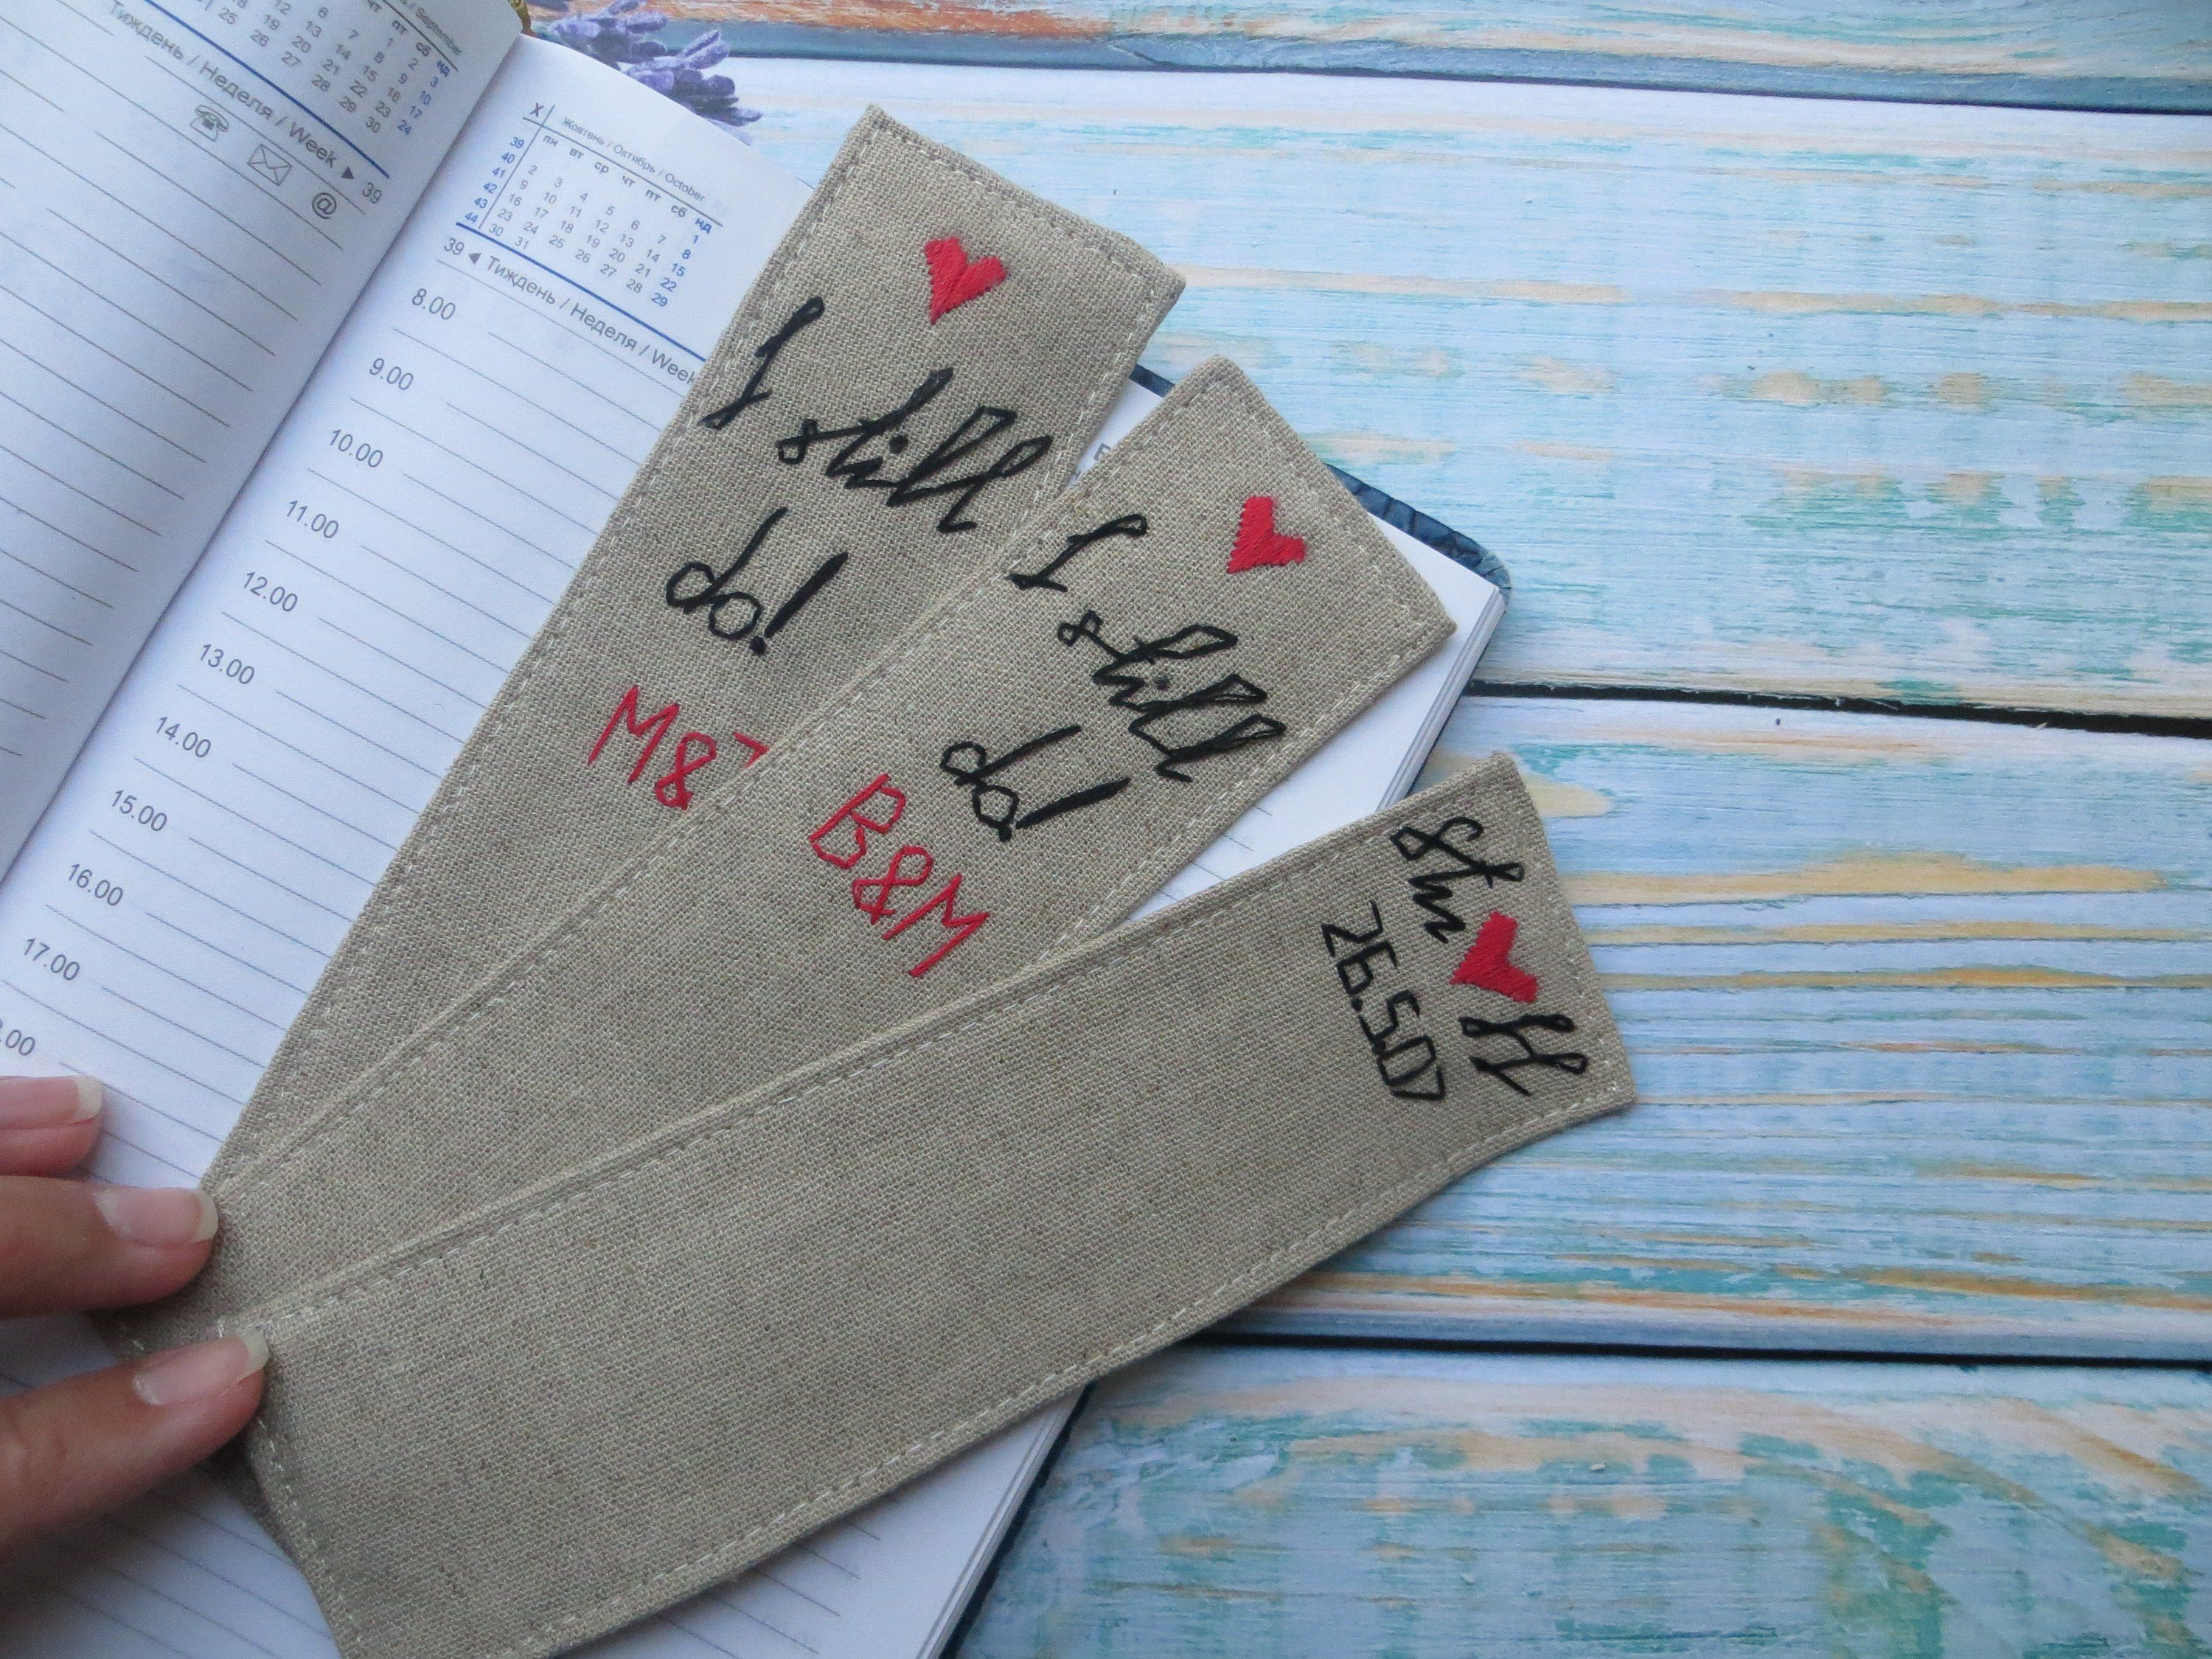 4th 12th anniversary gift wife linen anniversary gift her